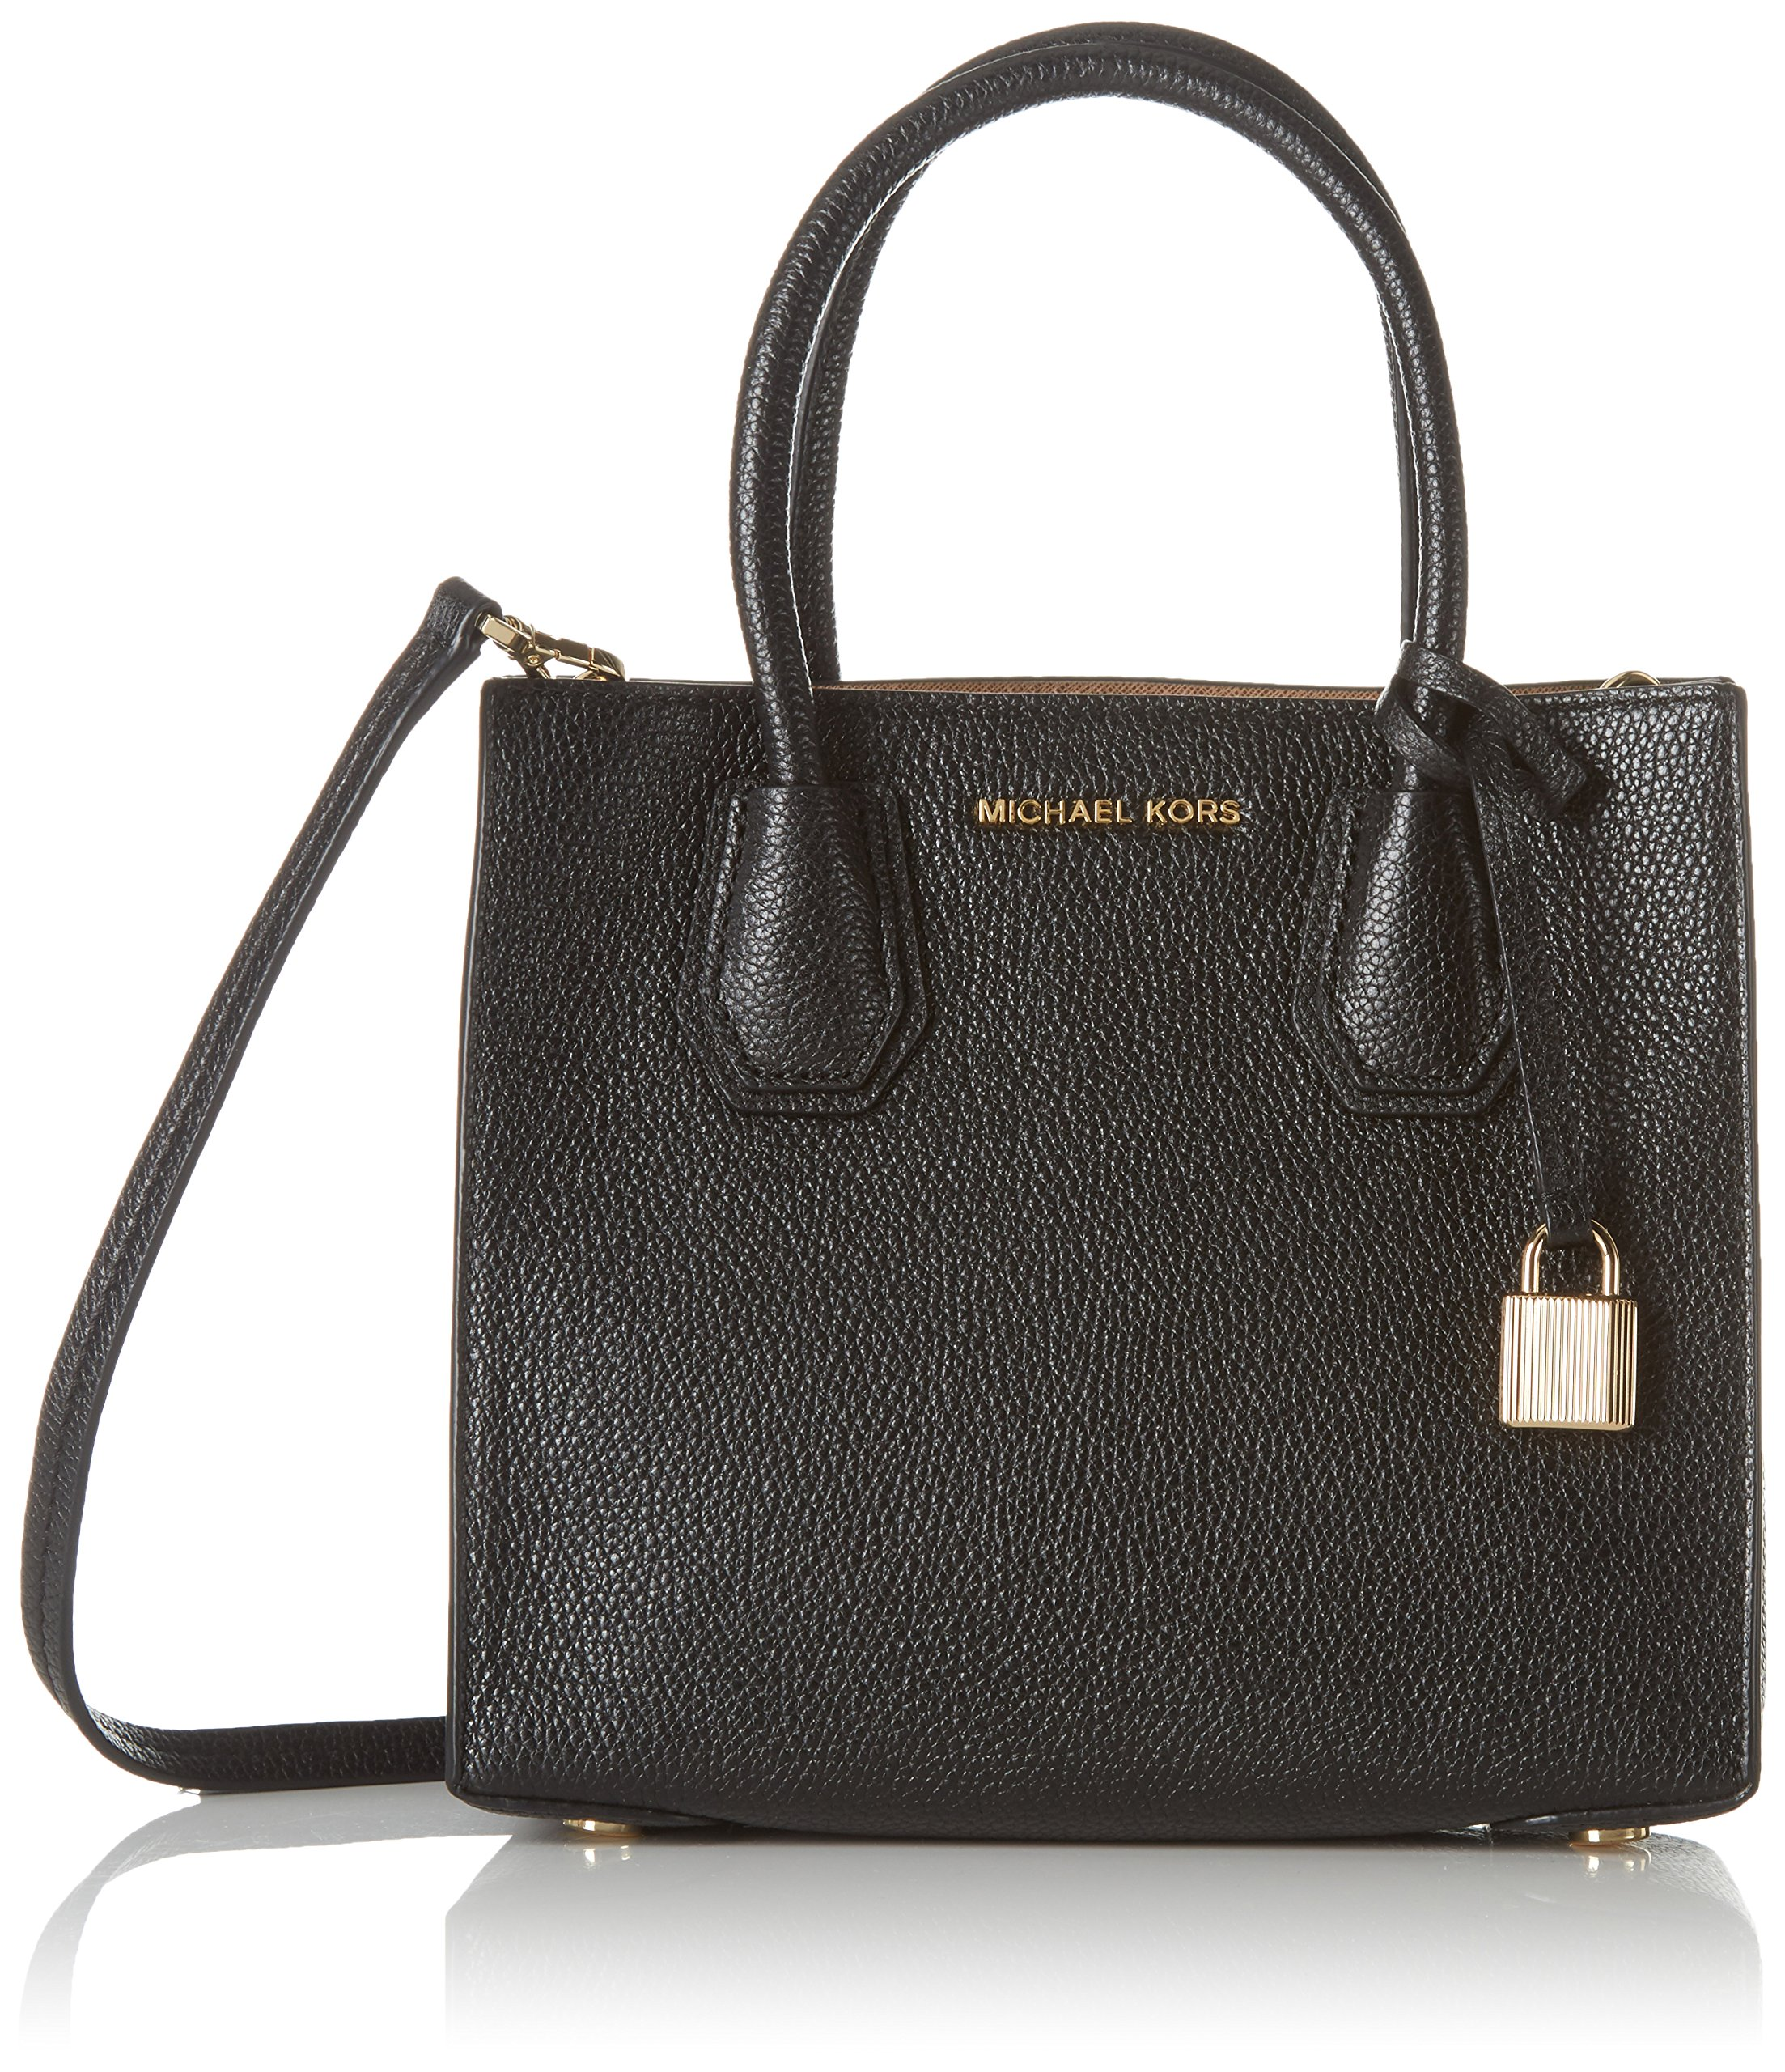 MICHAEL Michael Kors Women's Mercer Mini Tote, Black, One Size